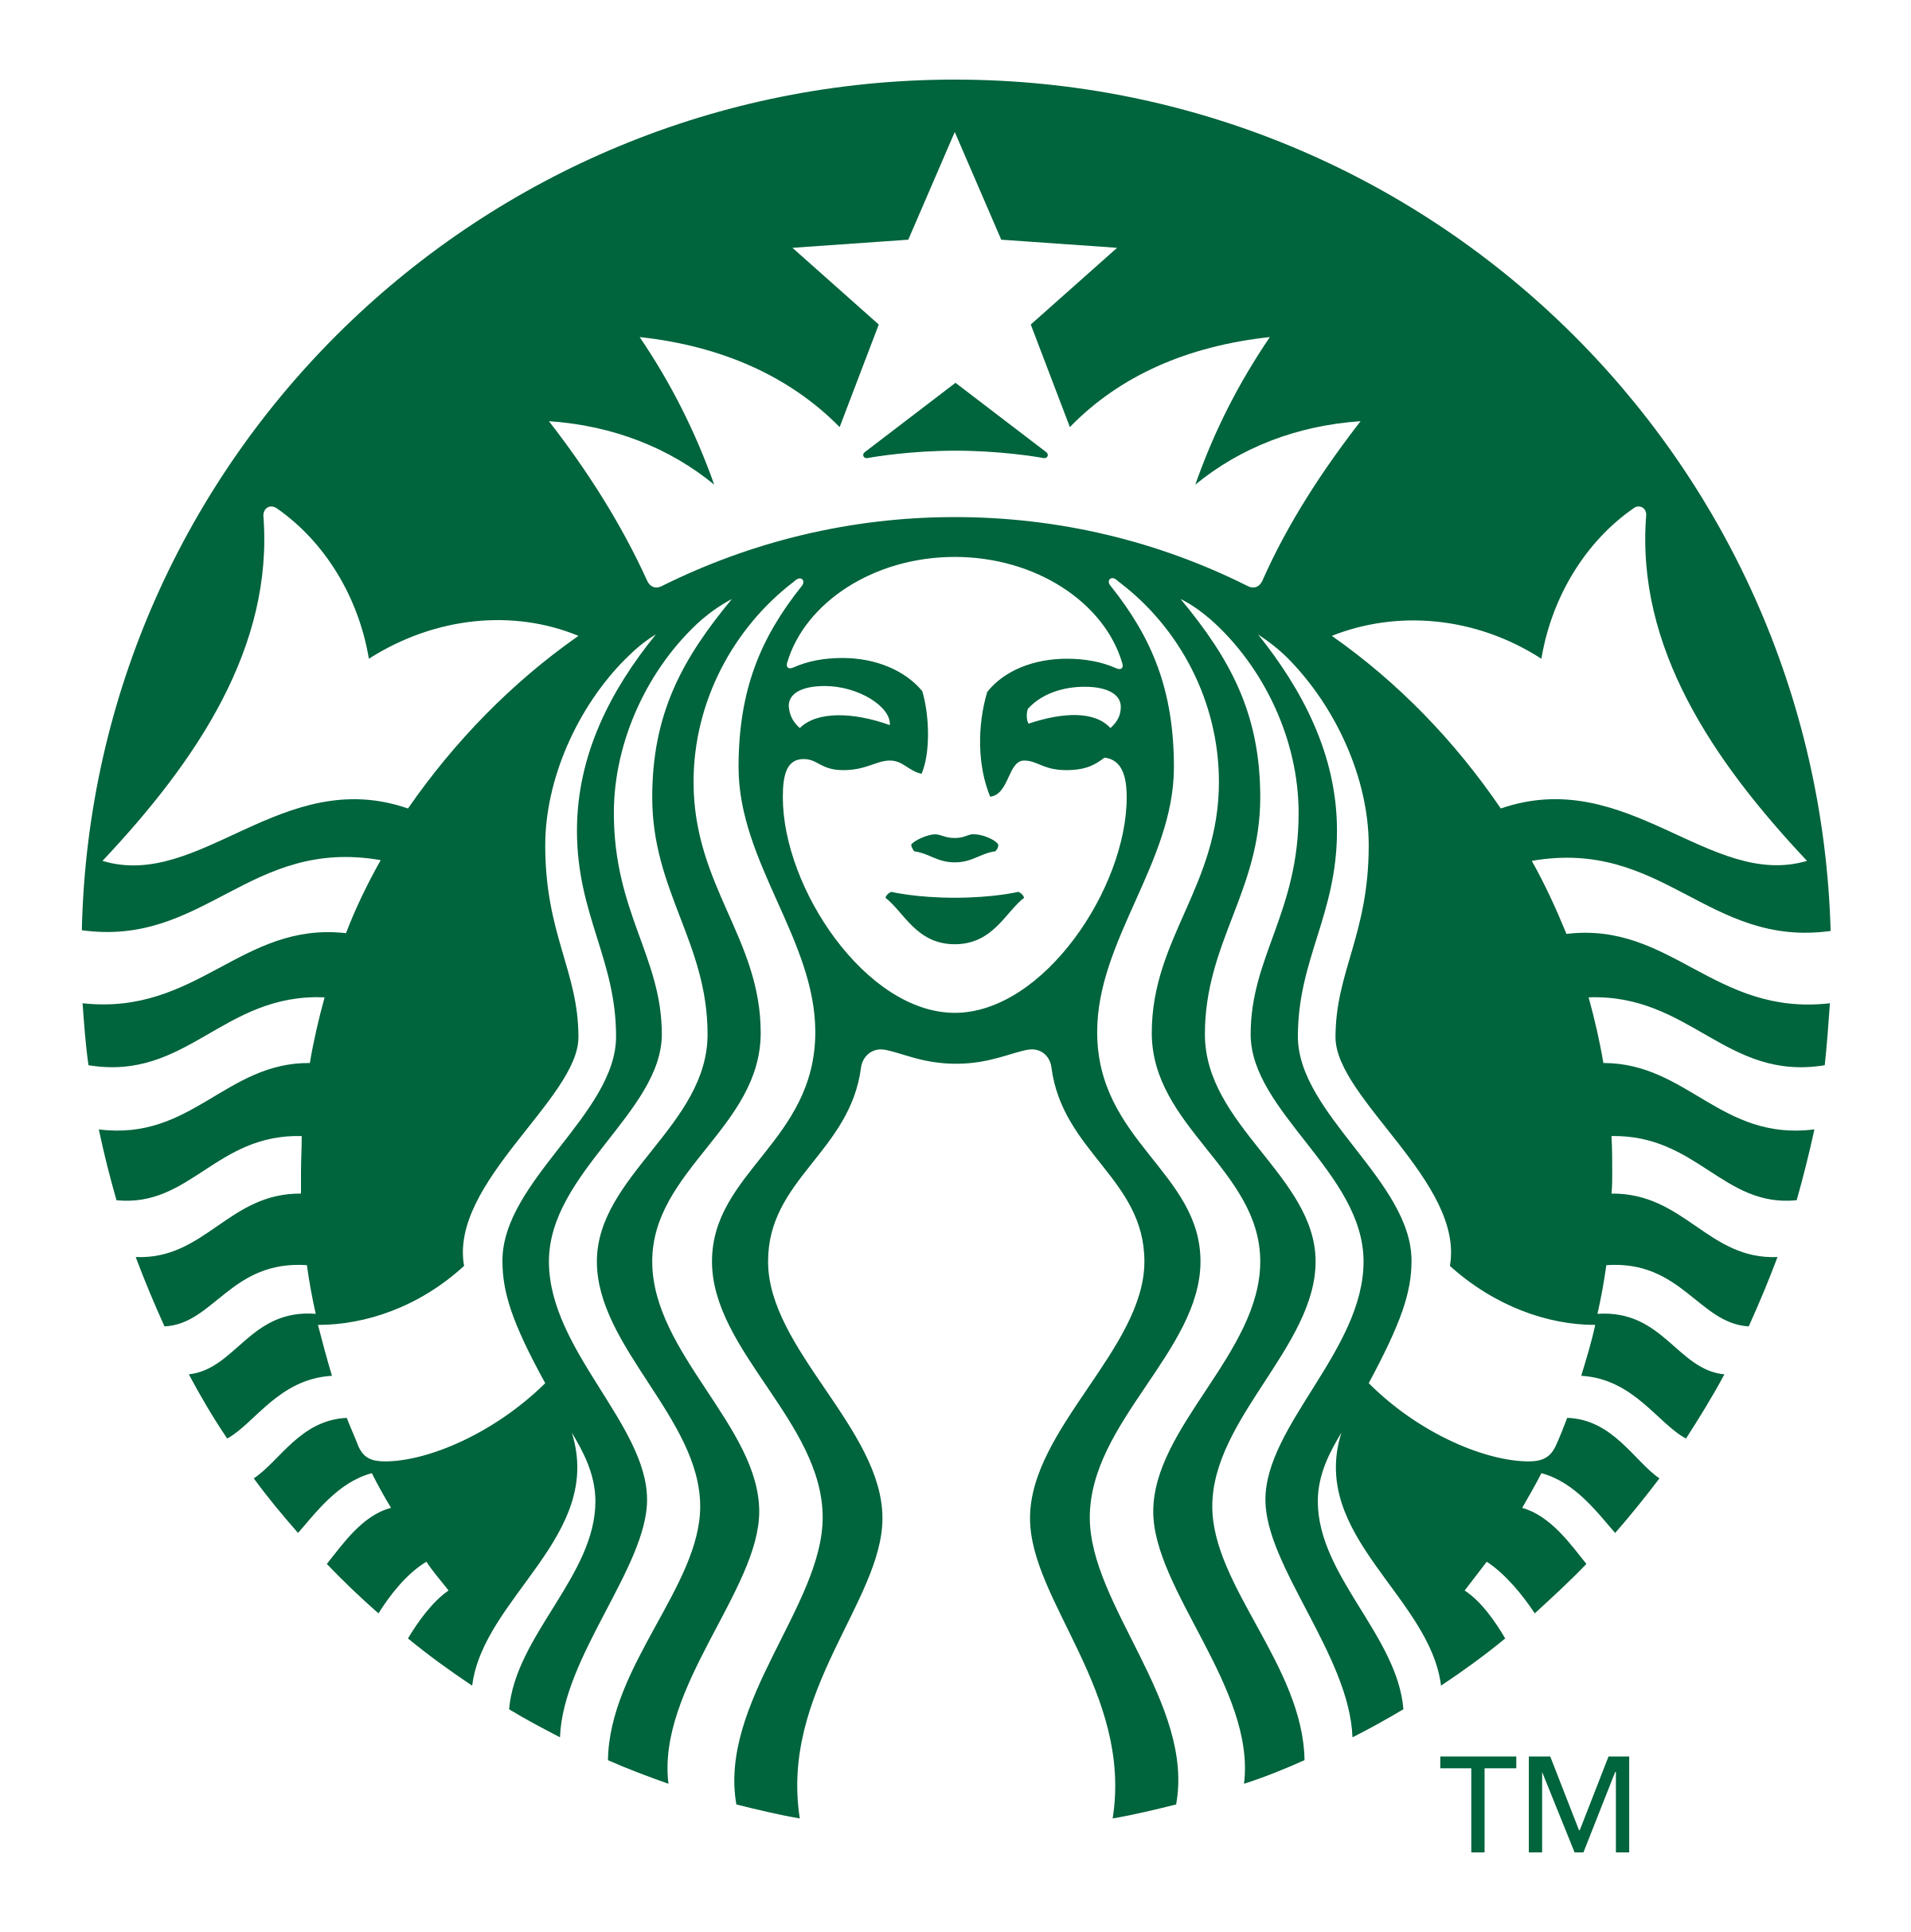 starbucks-logo-png-transparent